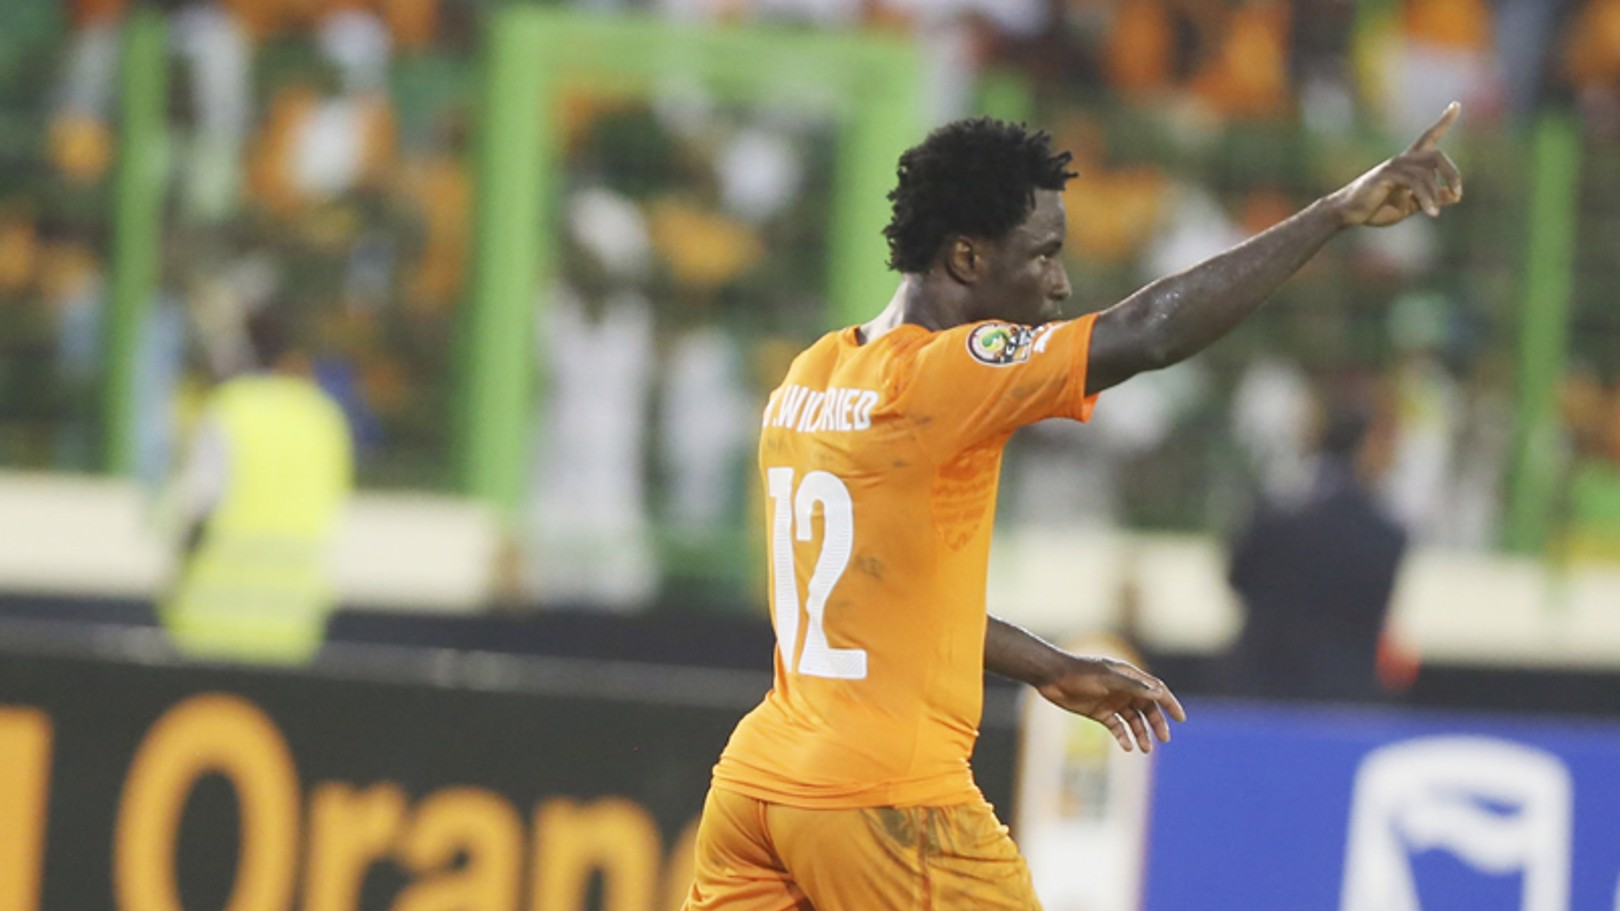 AFCON: Bony, Toure set sights on African crown